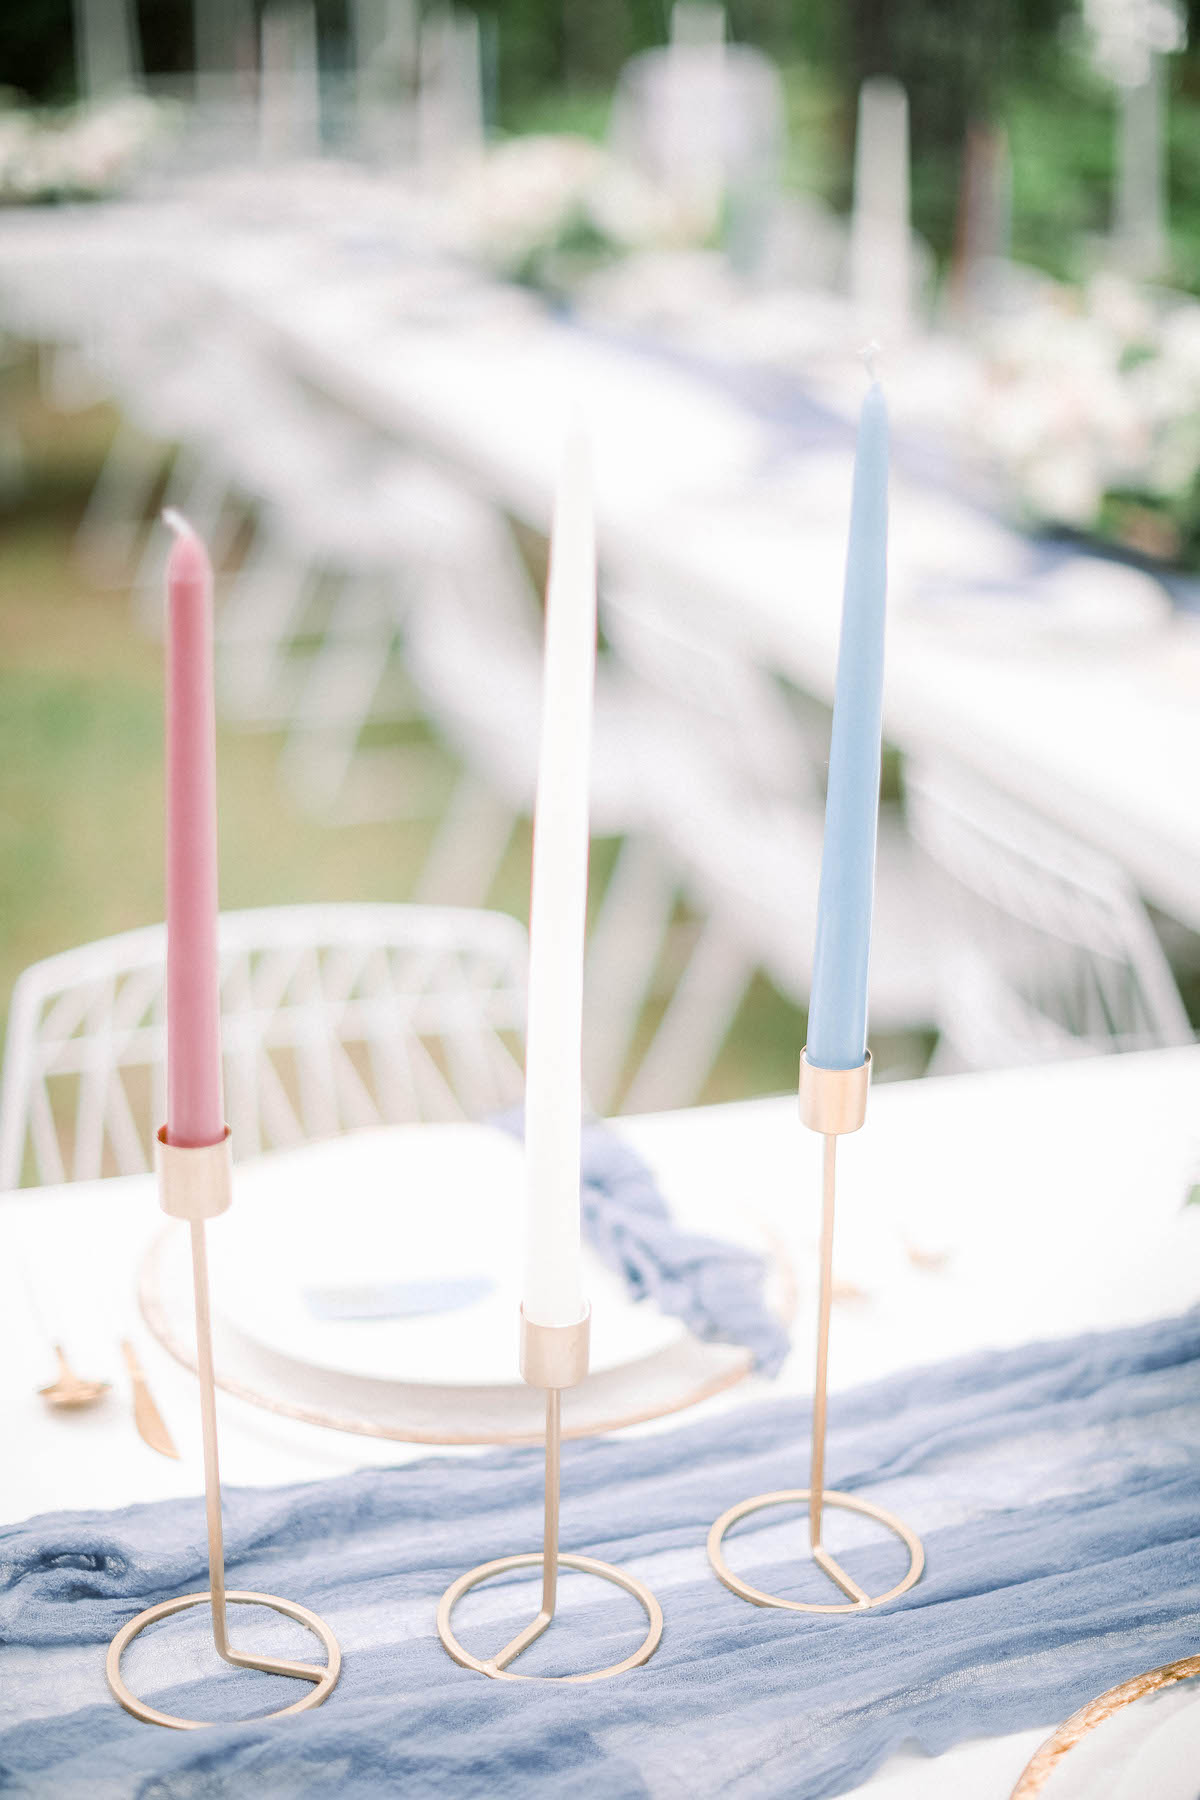 Blue, white, and red taper candle wedding decor